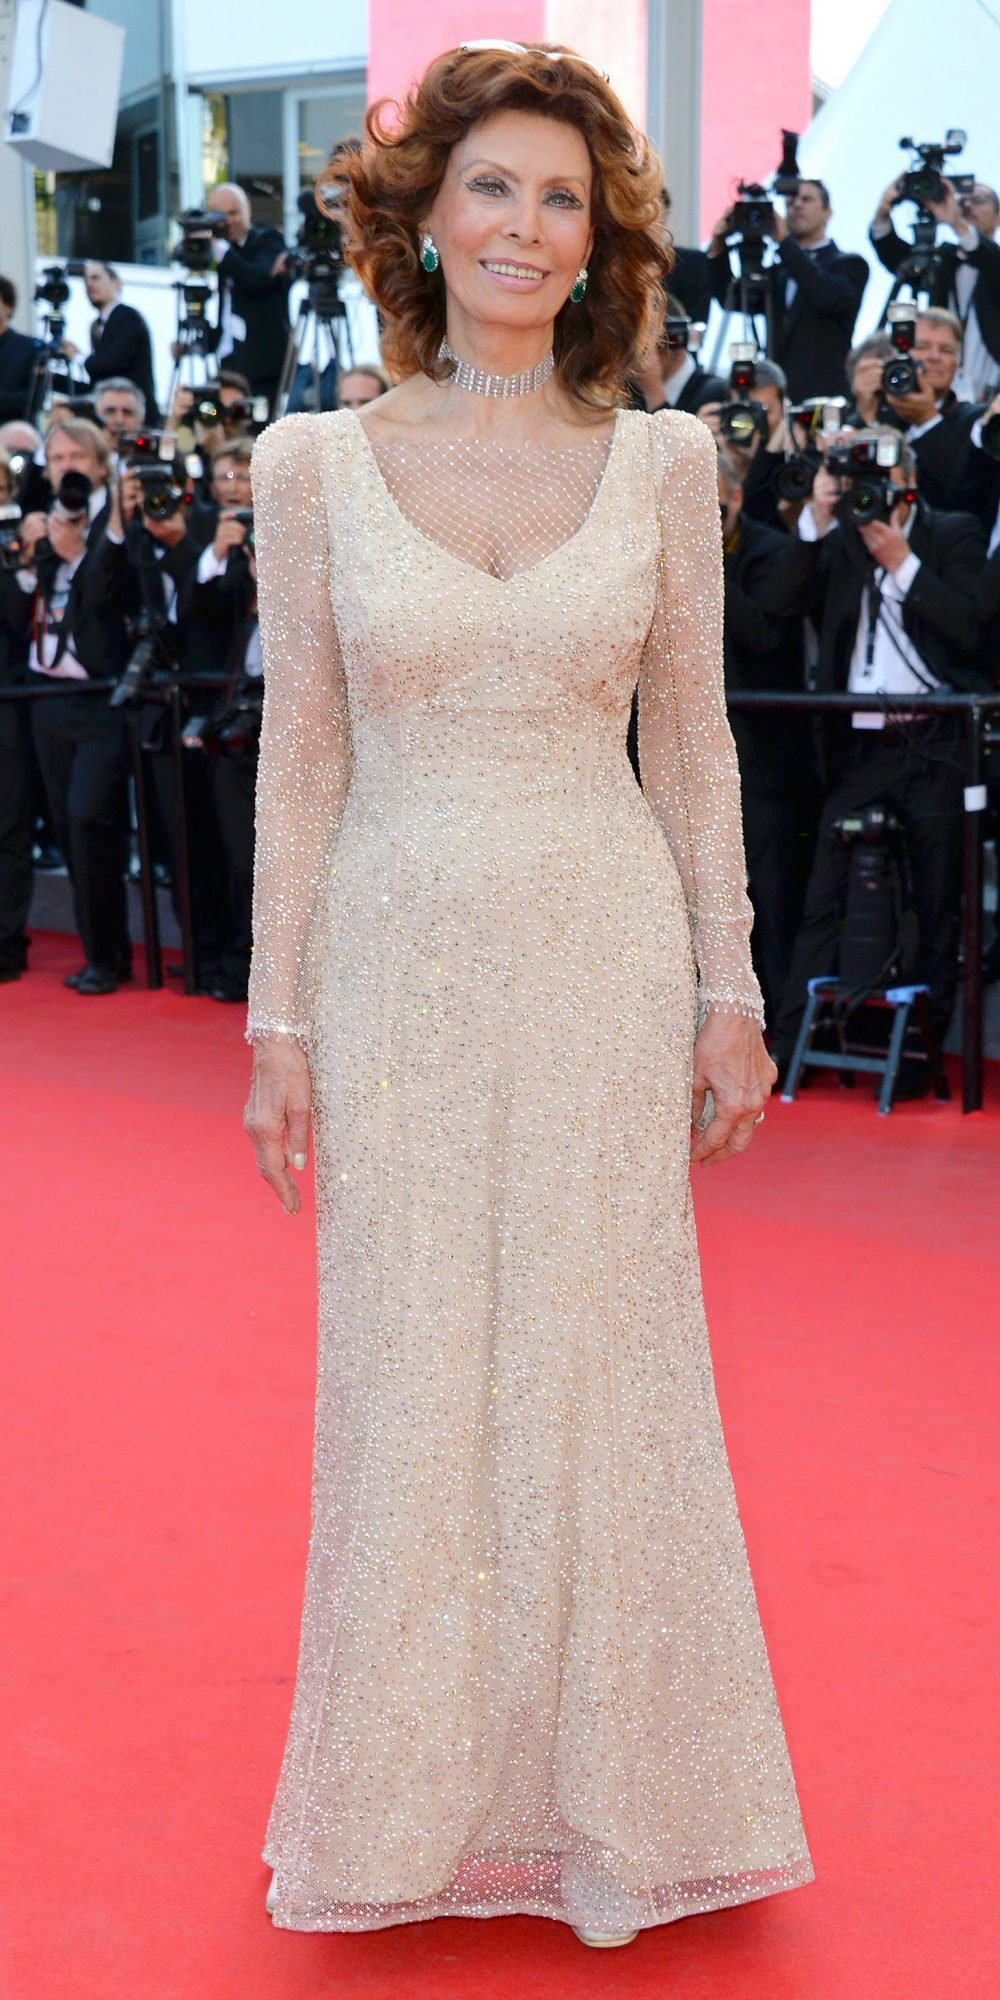 67th Annual Cannes Film Festival -  Two Days, One Night  Premiere